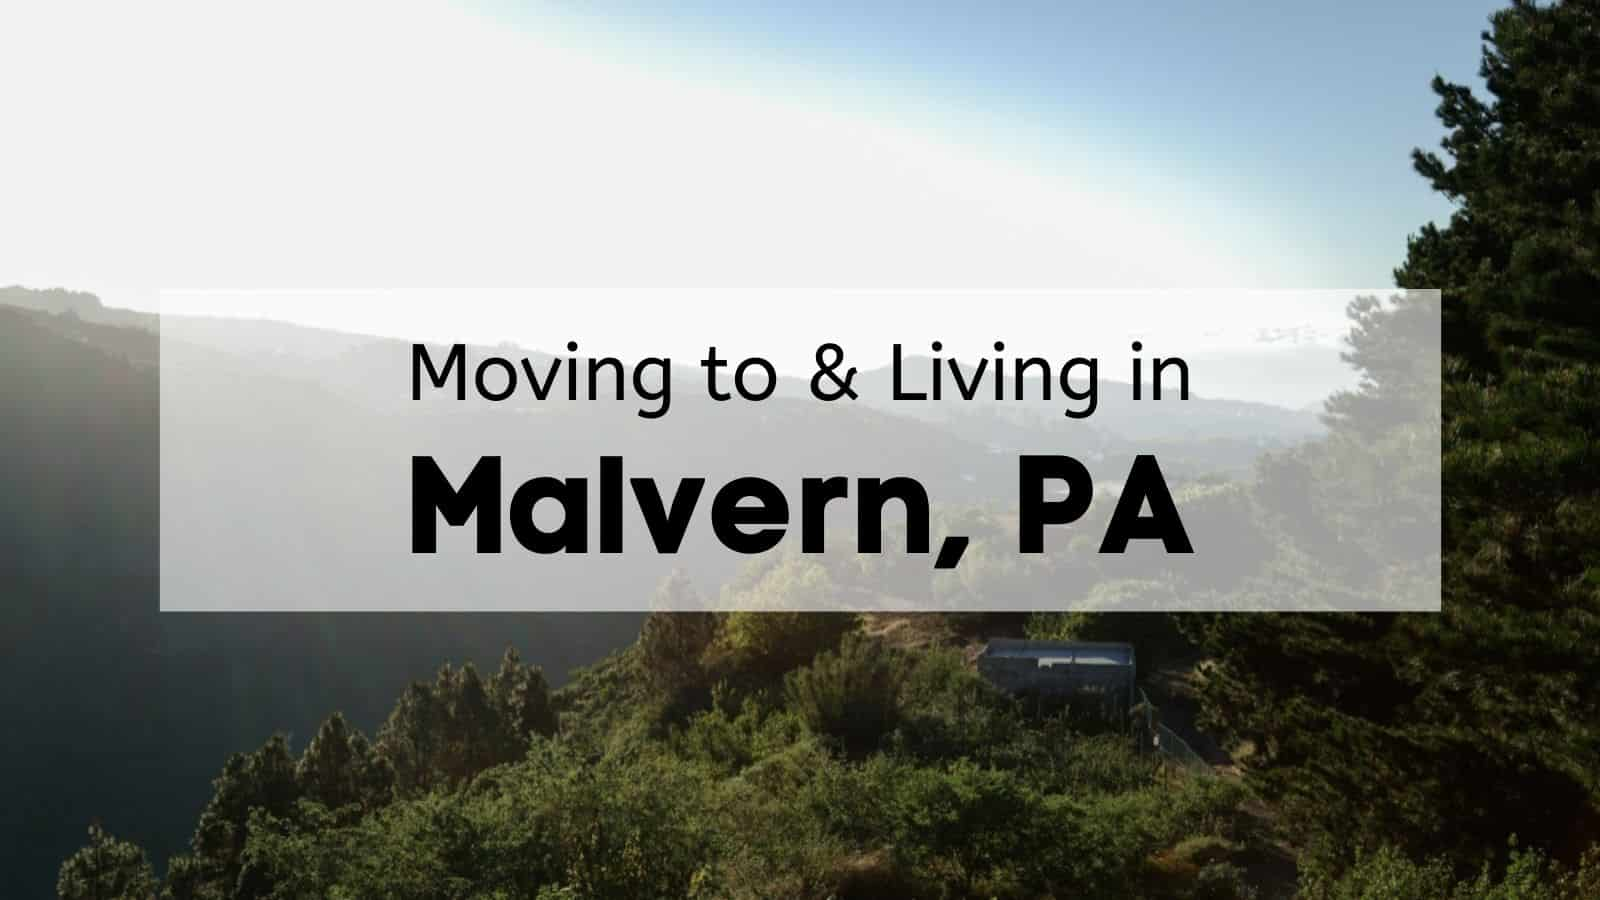 Moving to & Living in Malvern, PA